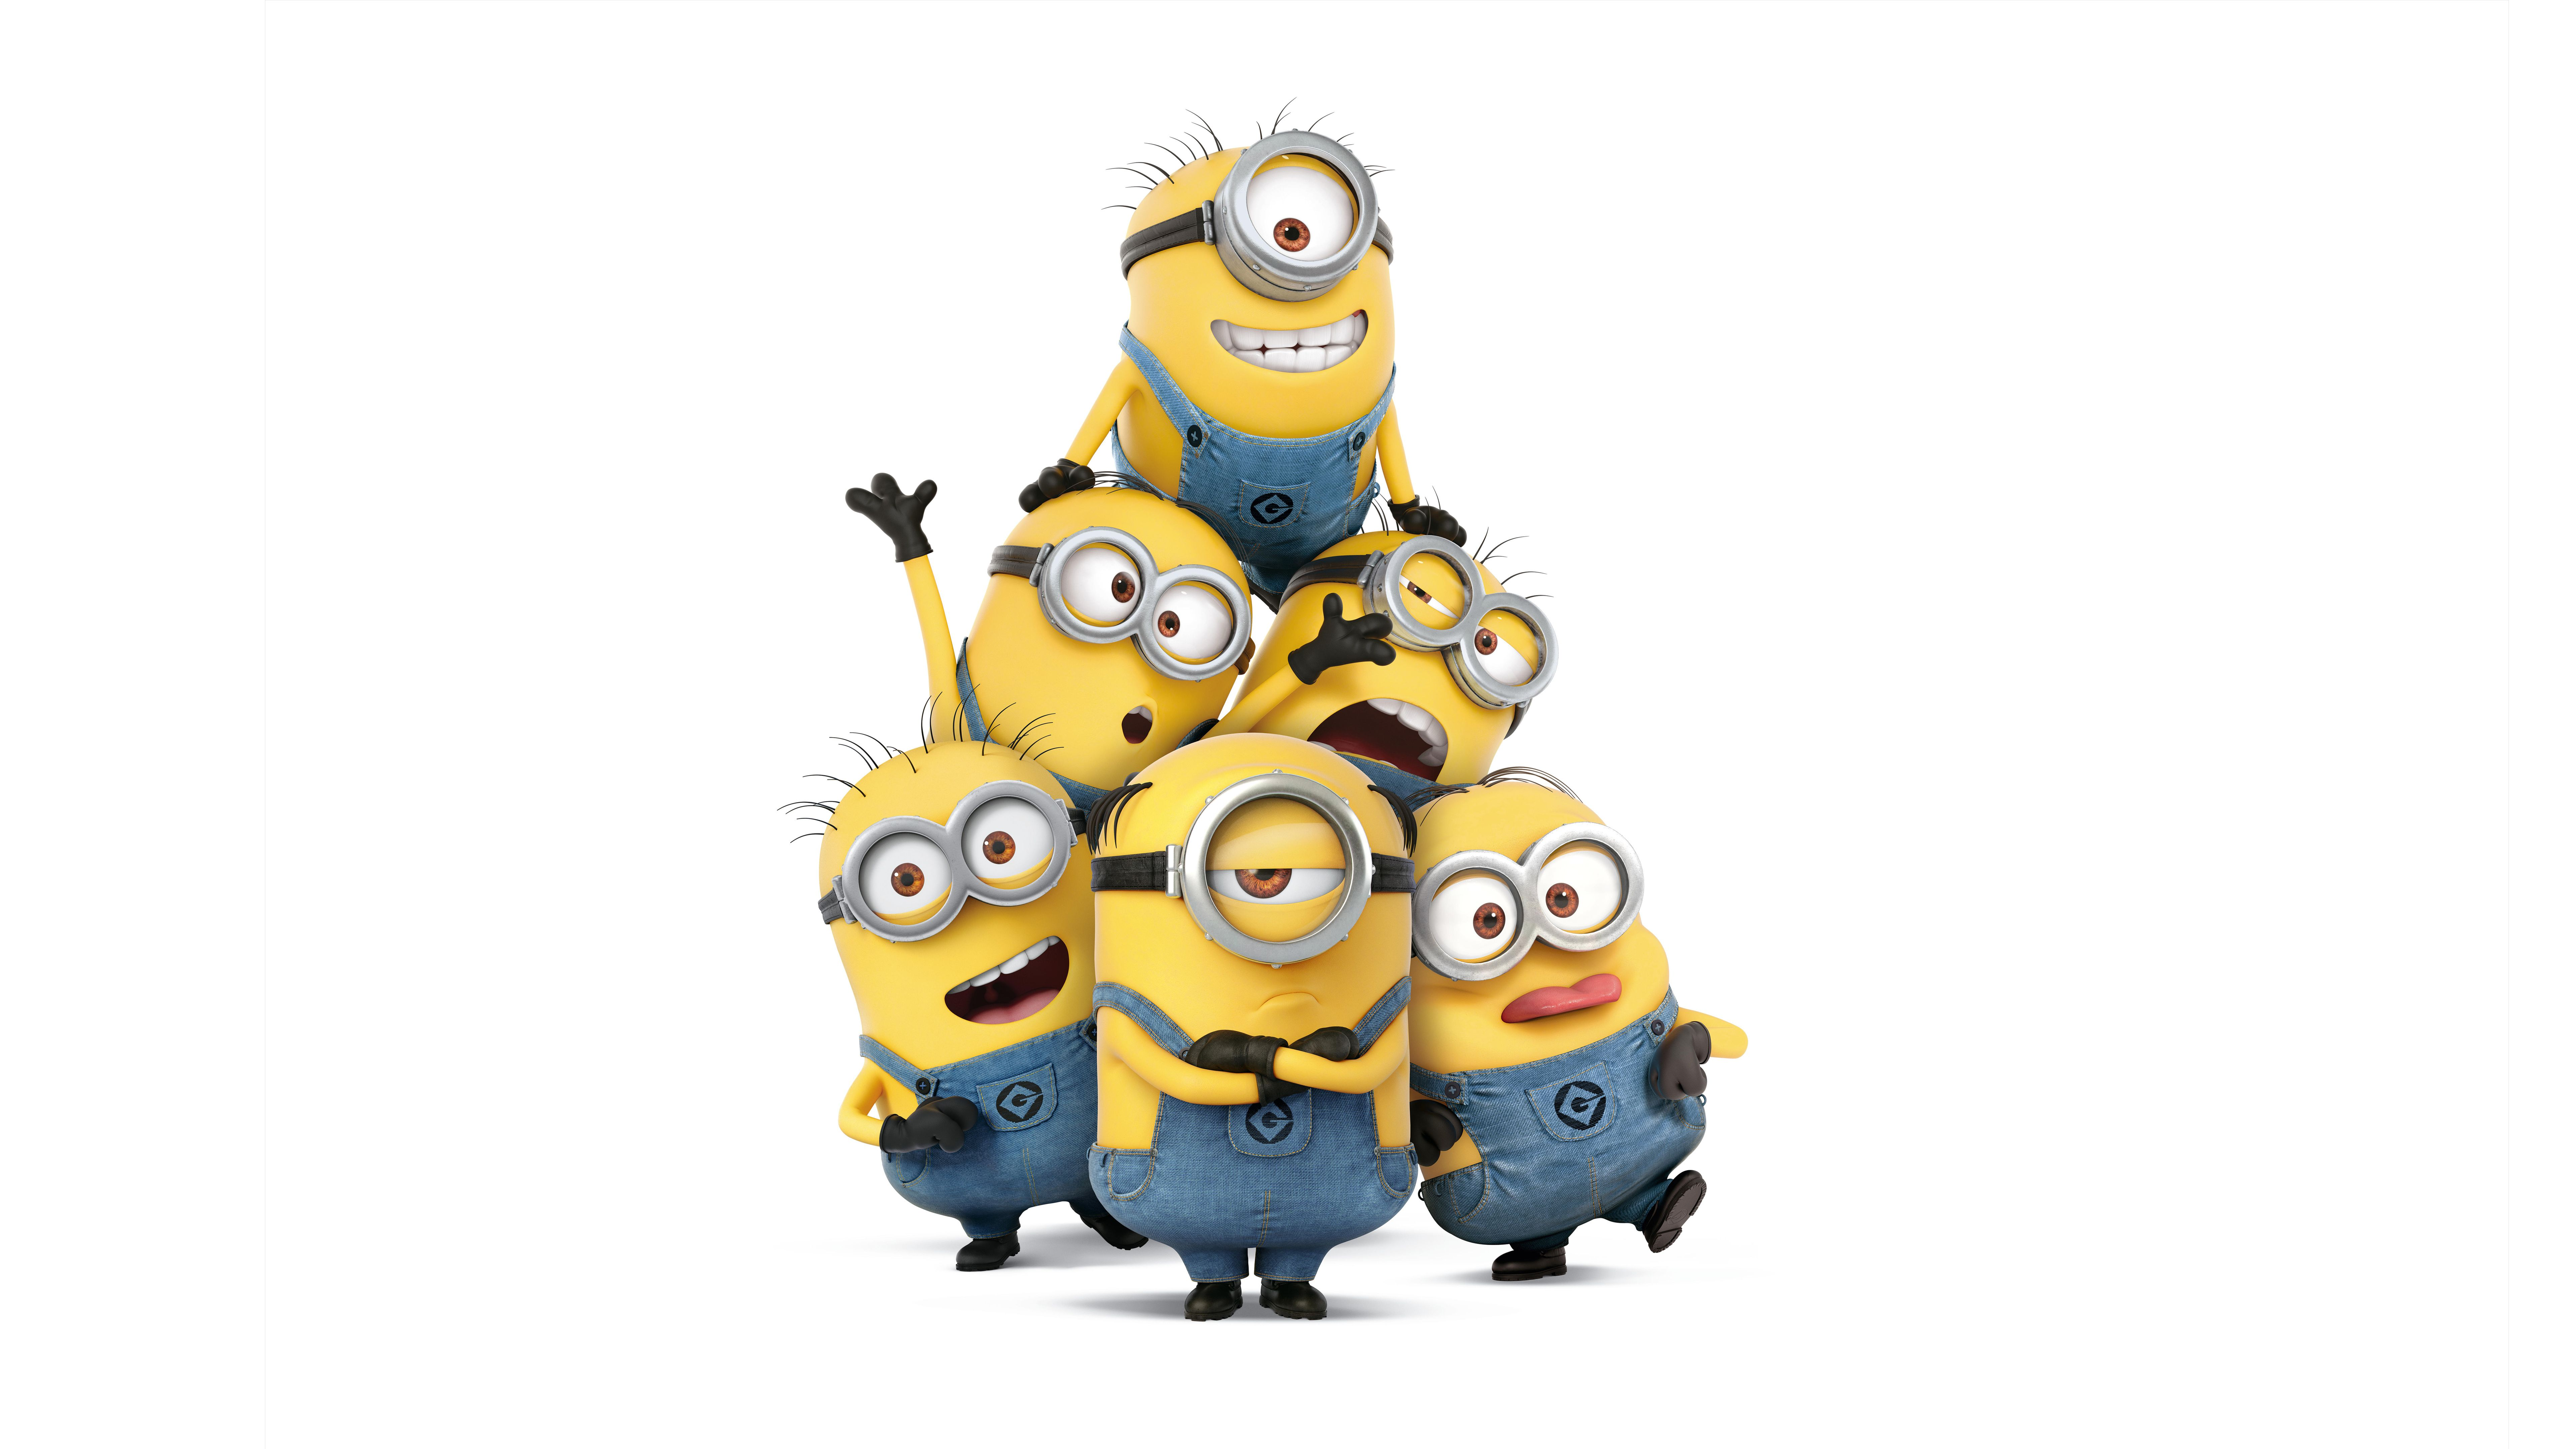 despicable me wallpaper minions 64 images - HD 7680×4320